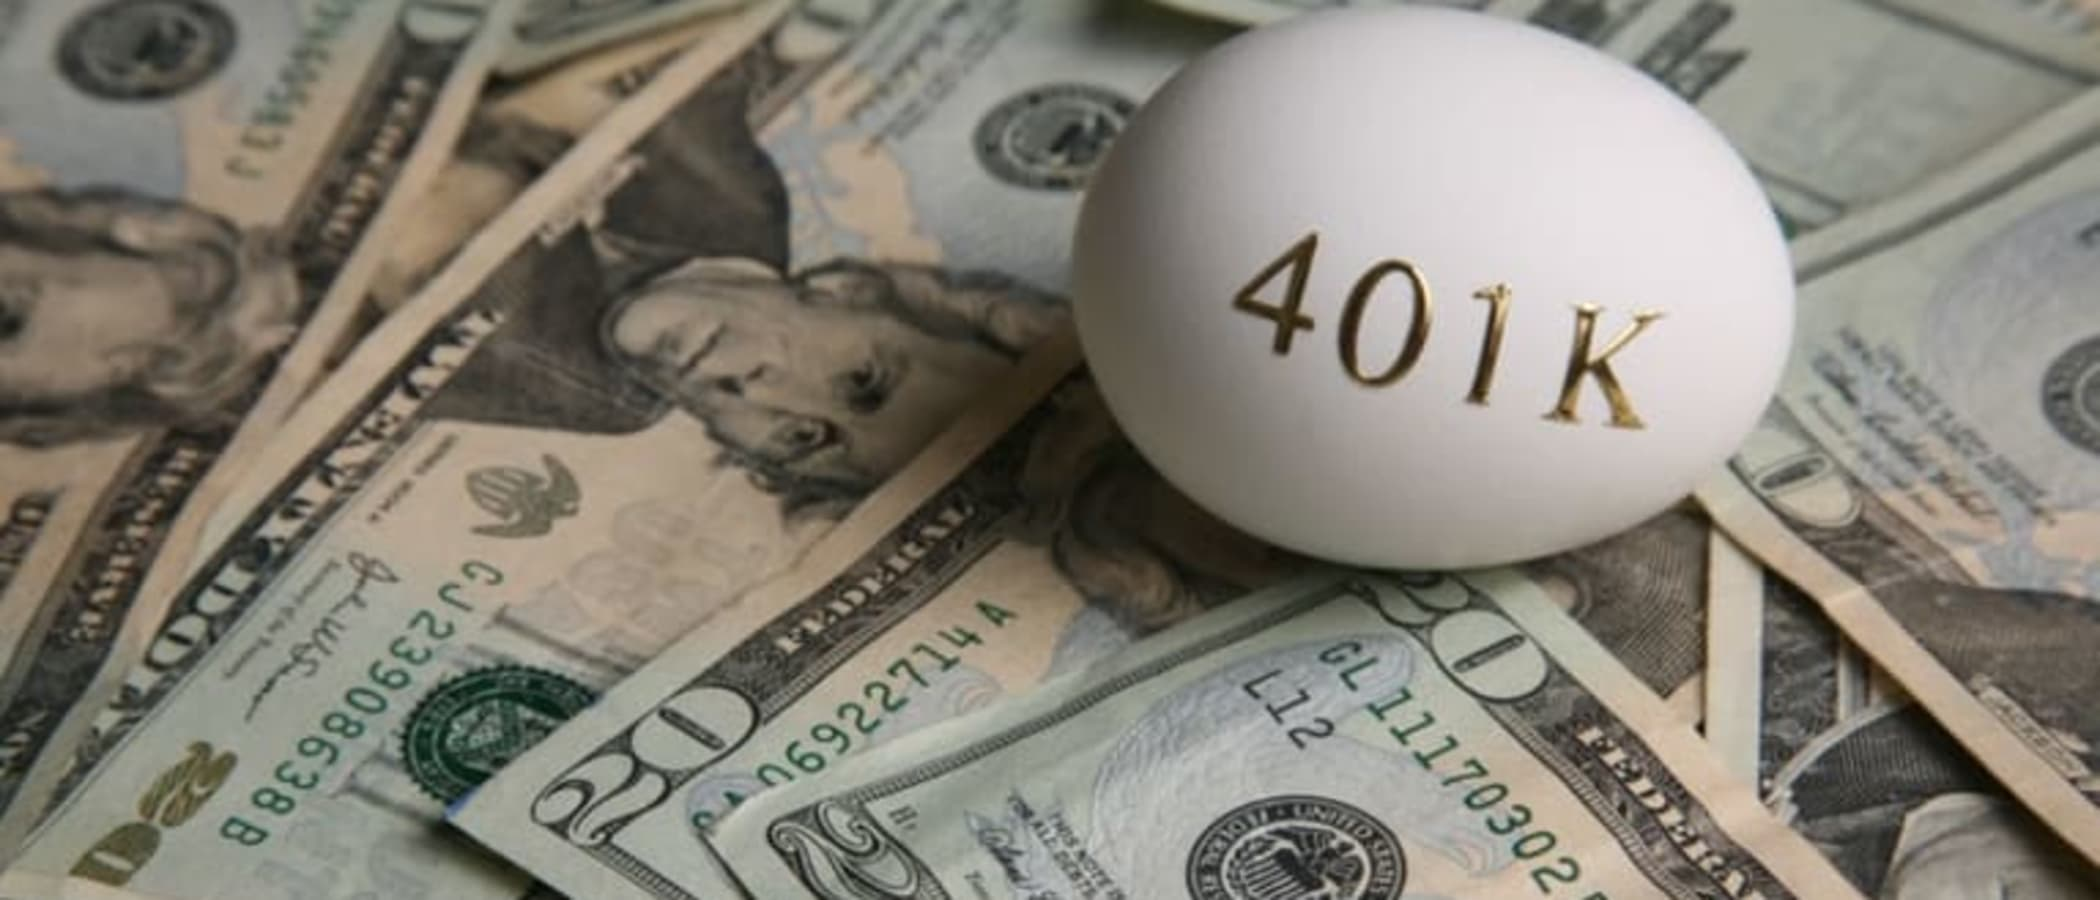 401k services from downey insurance group